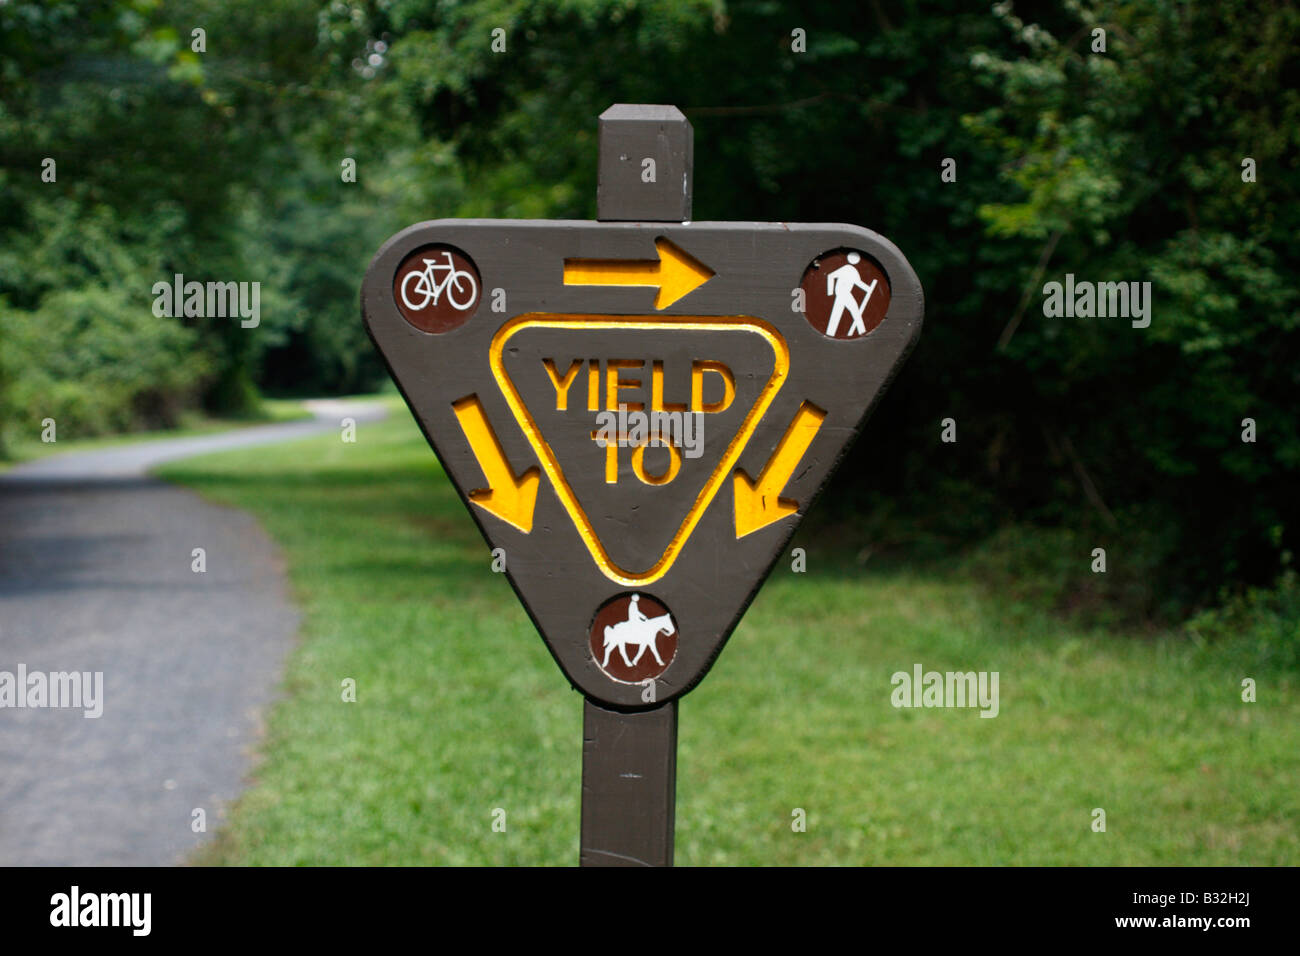 Yield sign on multi use trail - Stock Image